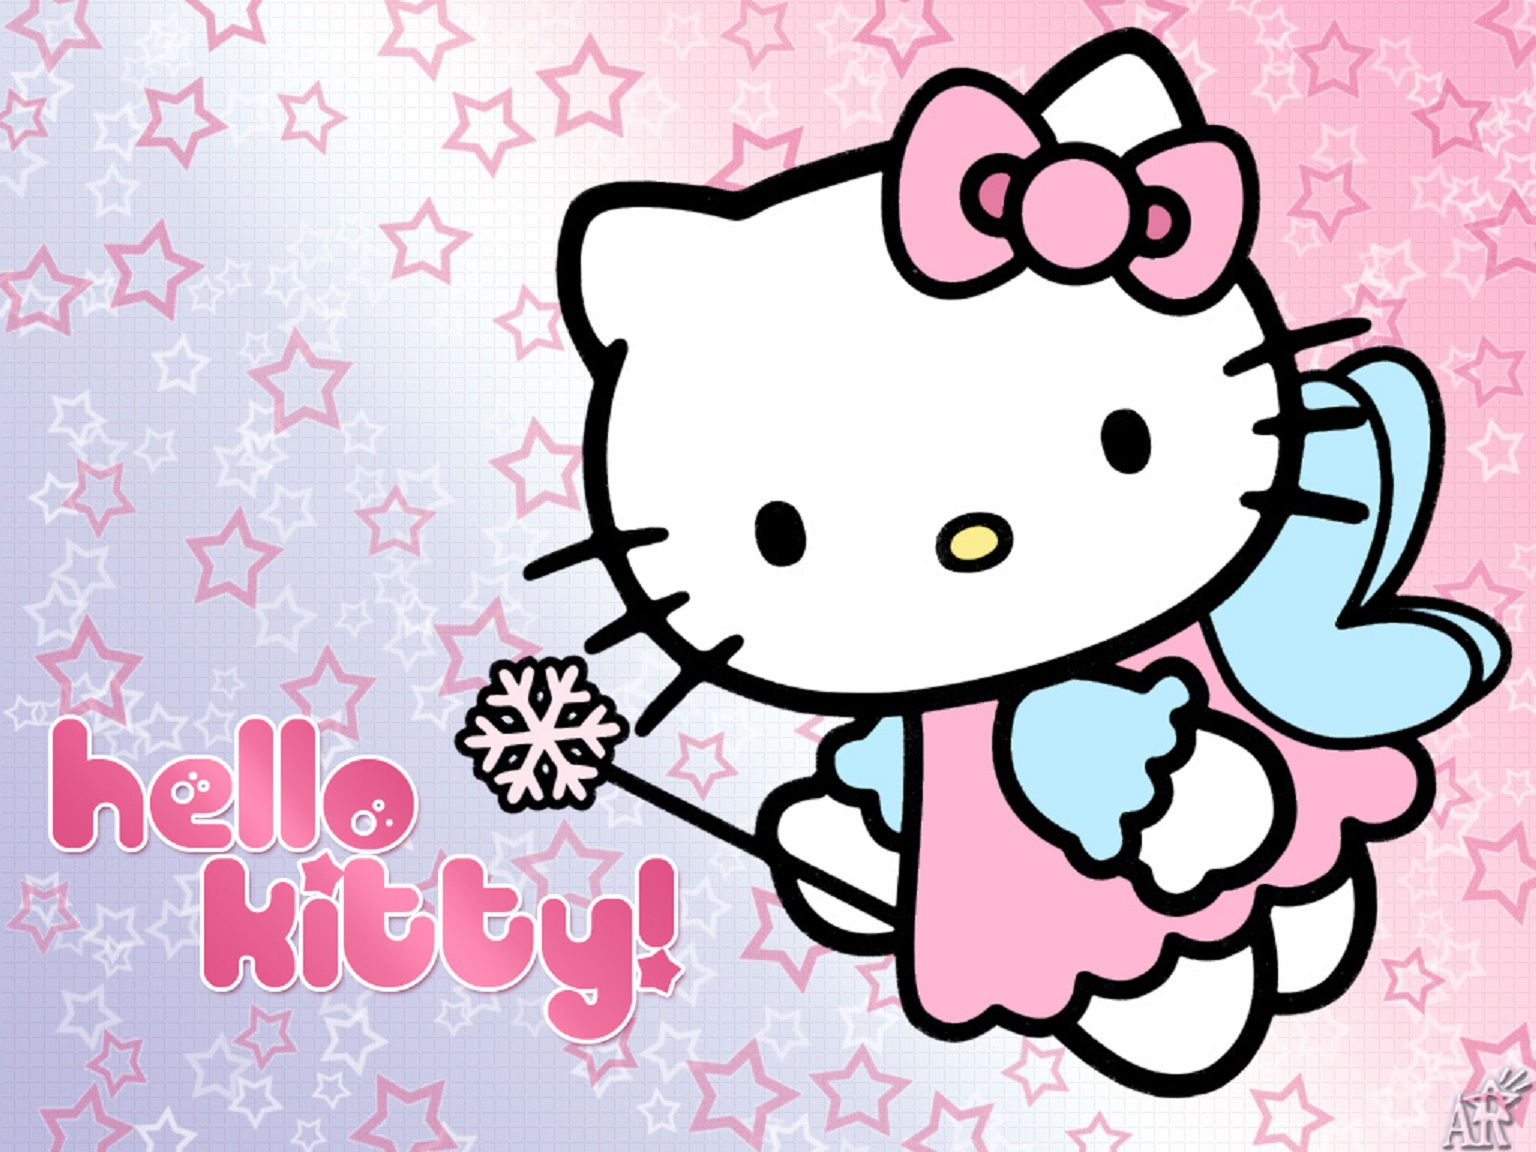 Top Wallpaper Hello Kitty Princess - Cute%2BHello%2BKitty%2BHD%2BWallpapers1  Trends_33308.jpg